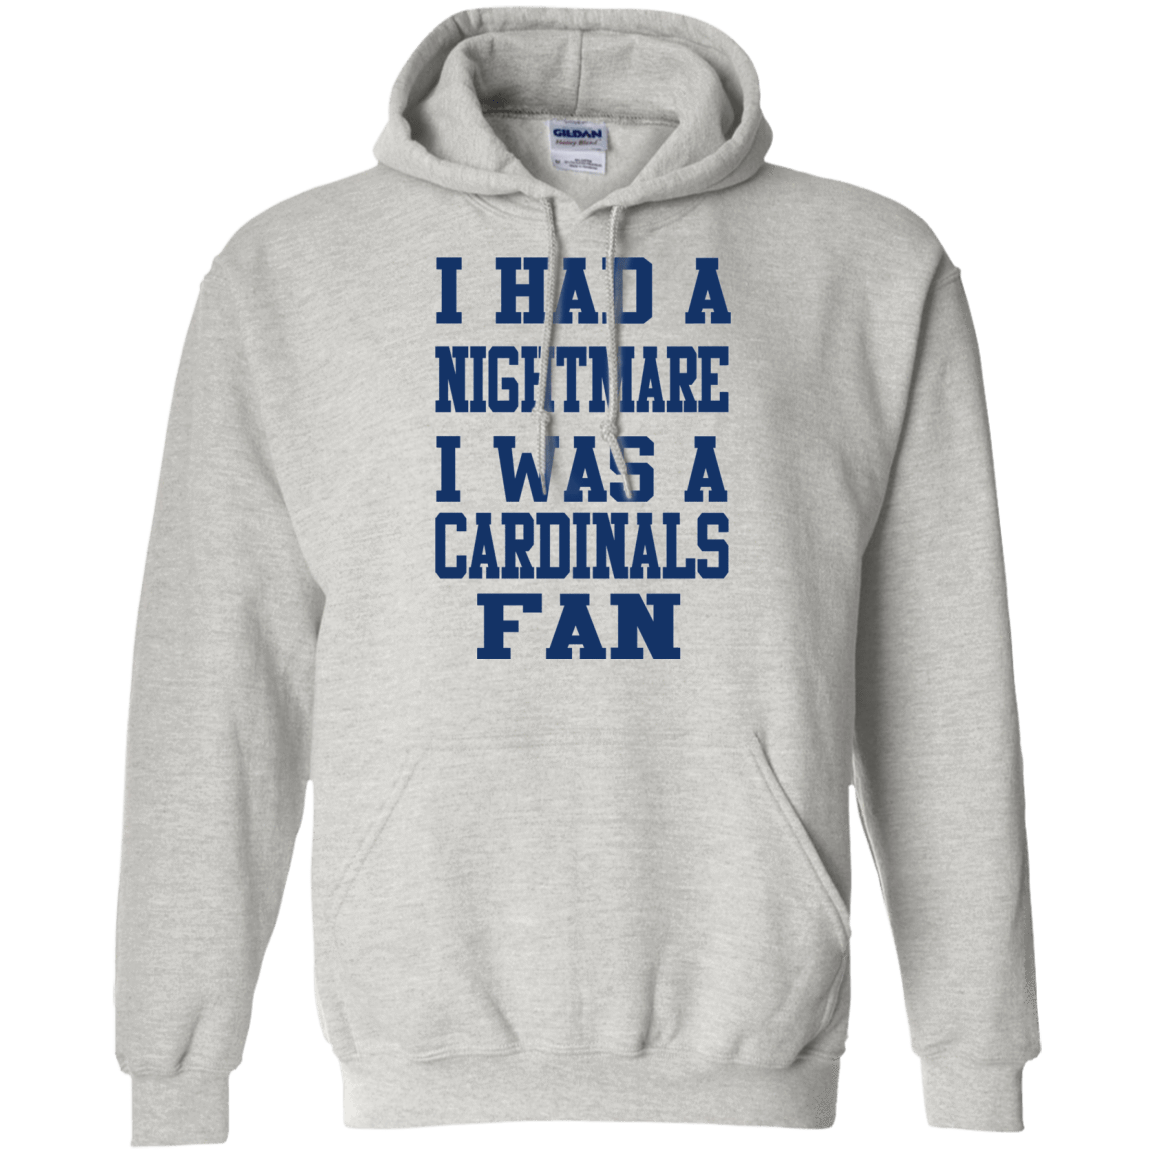 I Had A Nightmare I Was A Cardinals Fan T-Shirts, Hoodie, Tank 541-4748-79030983-23071 - Tee Ript